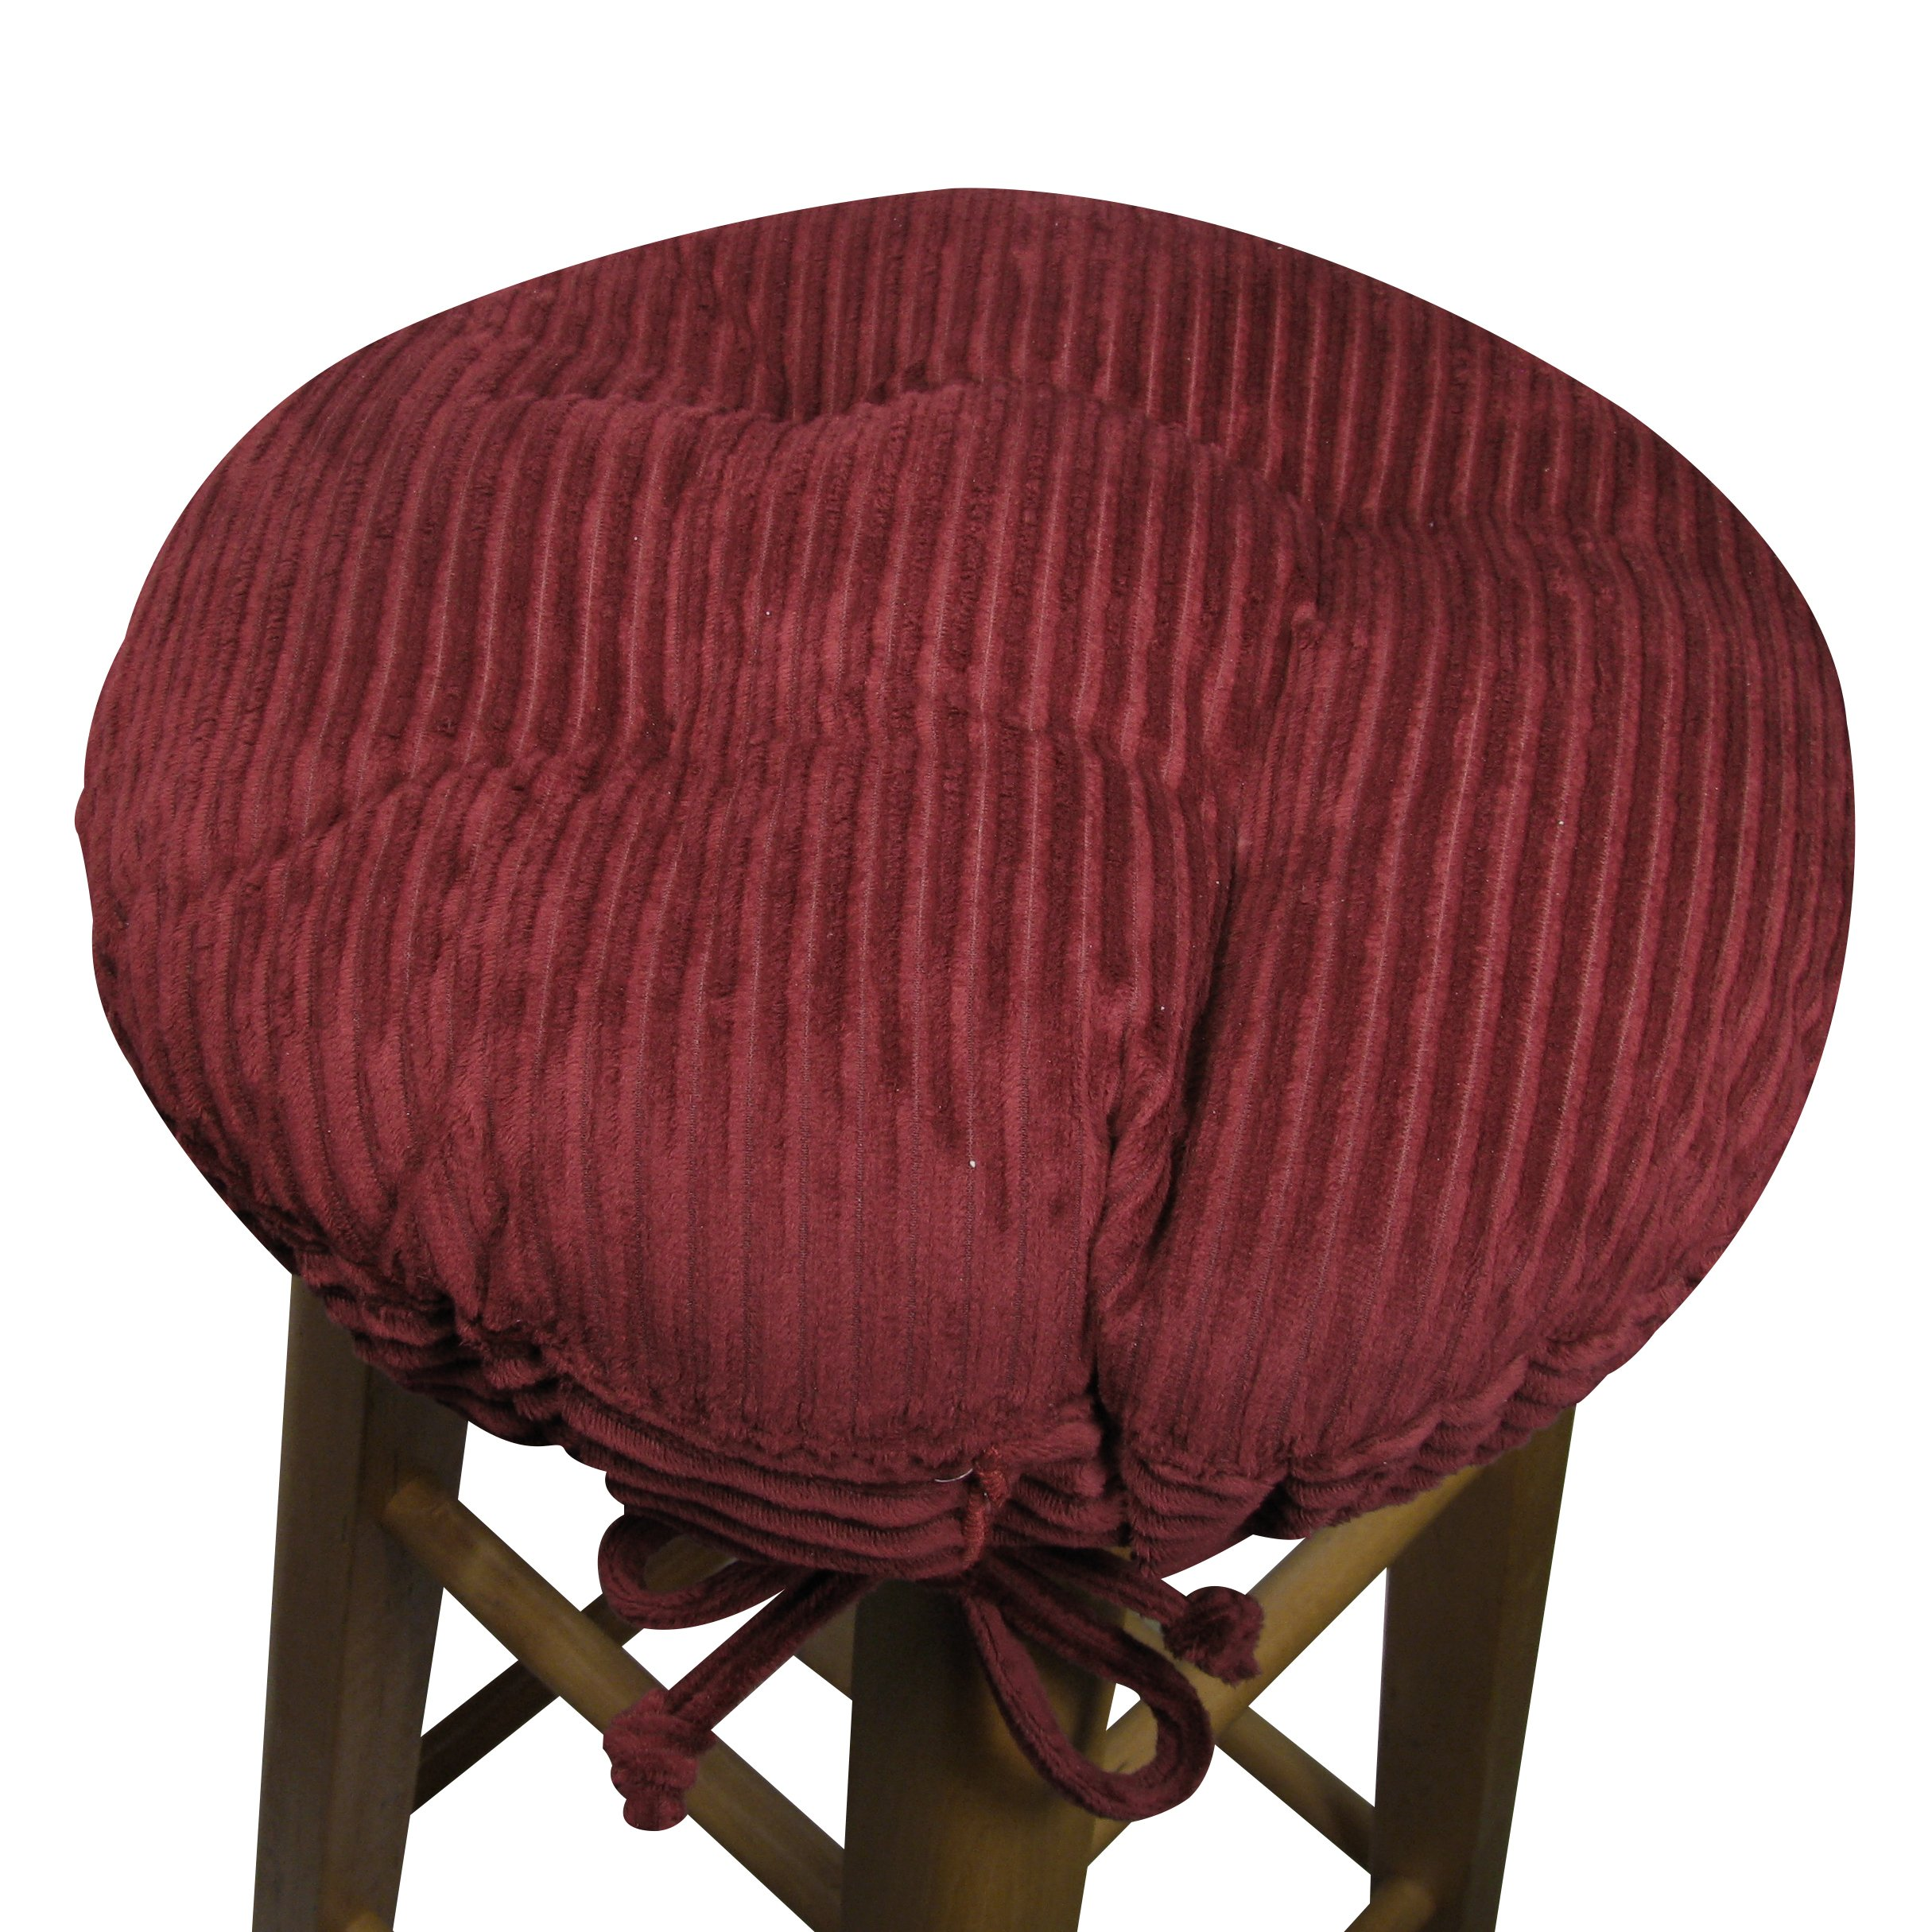 13'' Round Bar Stool Cover with Adjustable Drawstring Yoke - Wide Wale Wine Red Corduroy - Standard Size - Latex Foam Fill Barstool Cushion - Made in USA